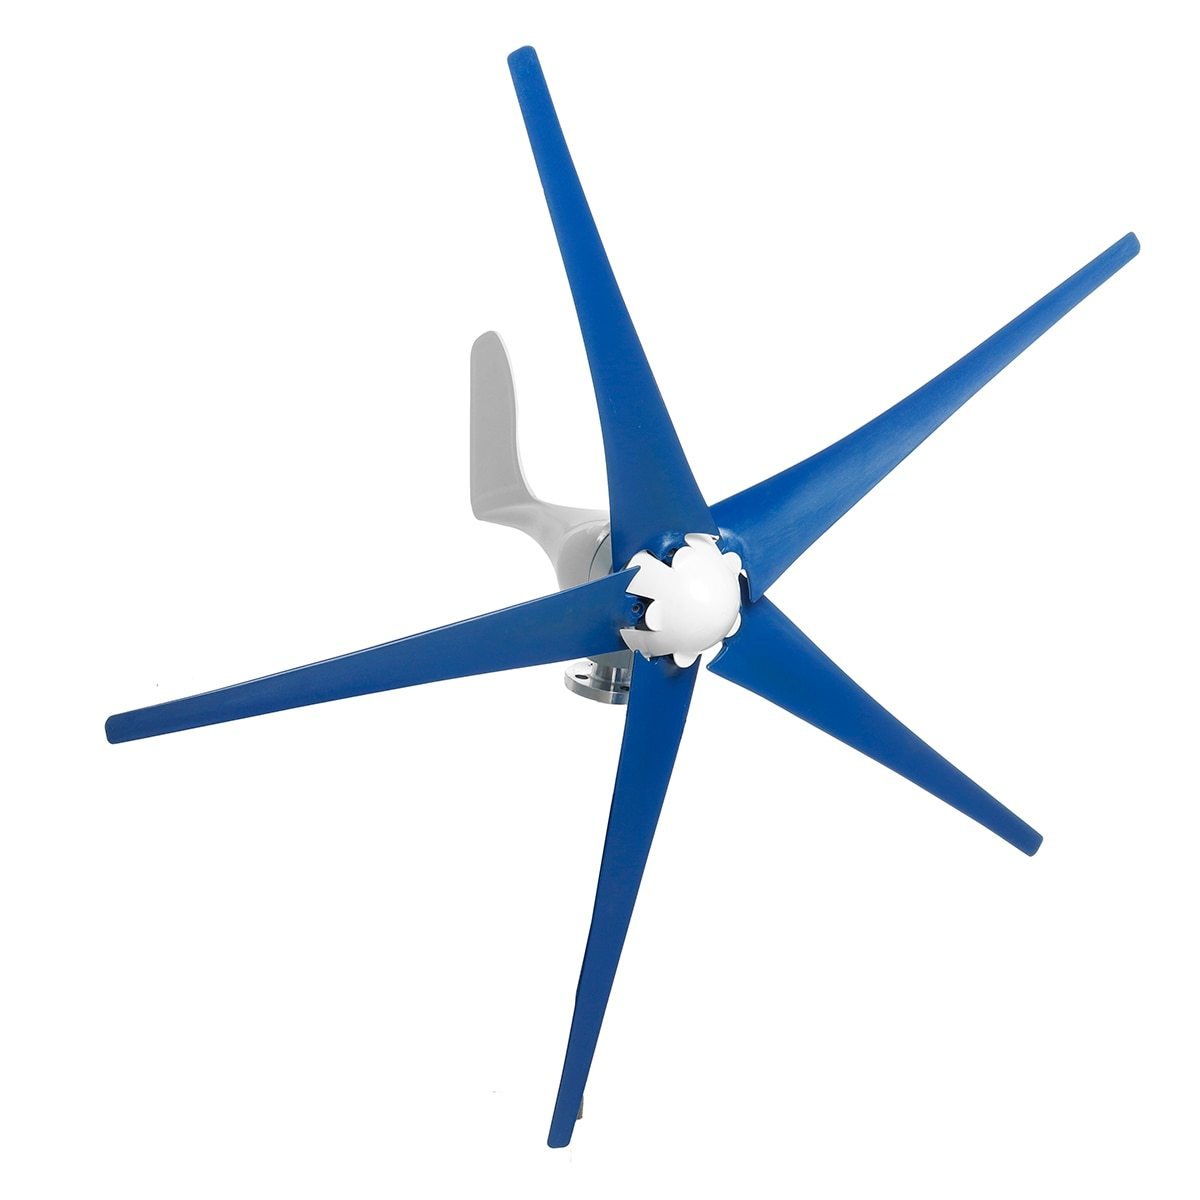 Small Wind Turbine Electricity Power Generator For Home 3600W - Daniels Store